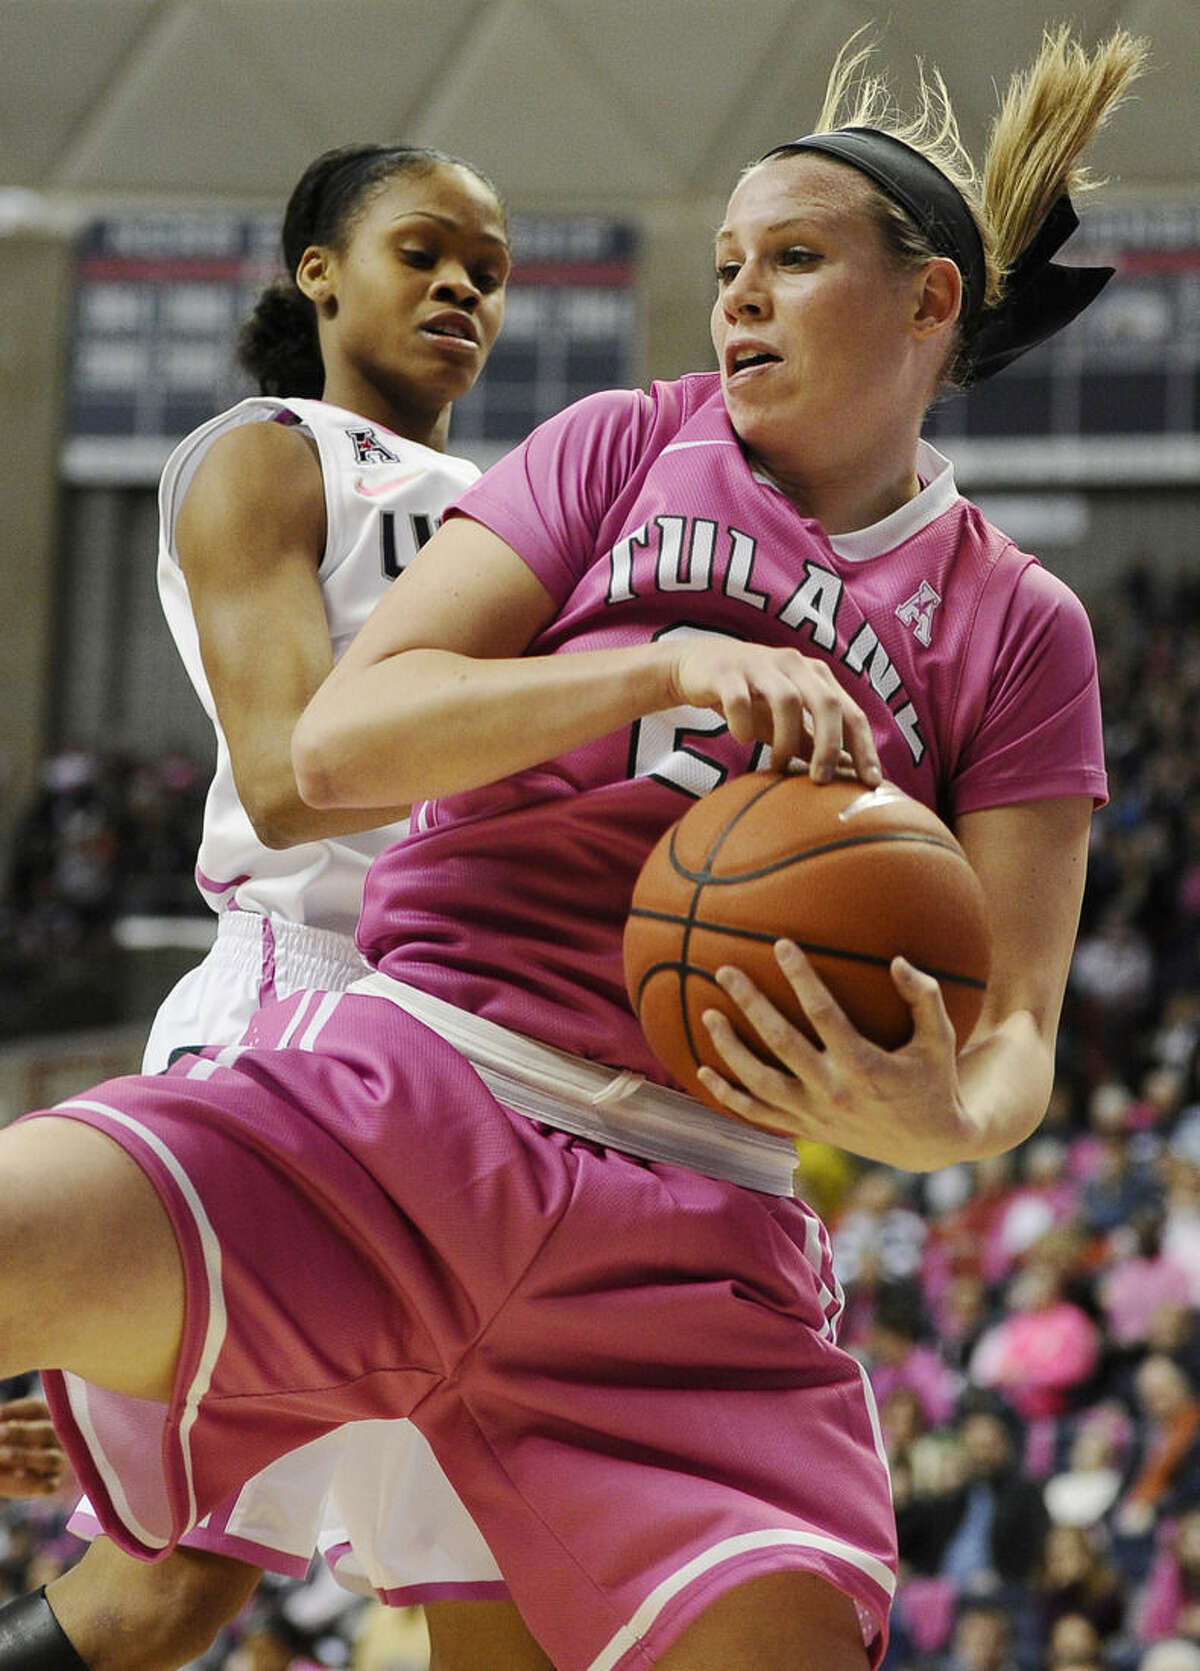 Tulane's Danielle Blagg pulls down a rebound in front of Connecticut's Moriah Jefferson during the first half of an NCAA college basketball game, Saturday, Feb. 14, 2015, in Storrs, Conn. UConn won 87-39. (AP Photo/Jessica Hill)